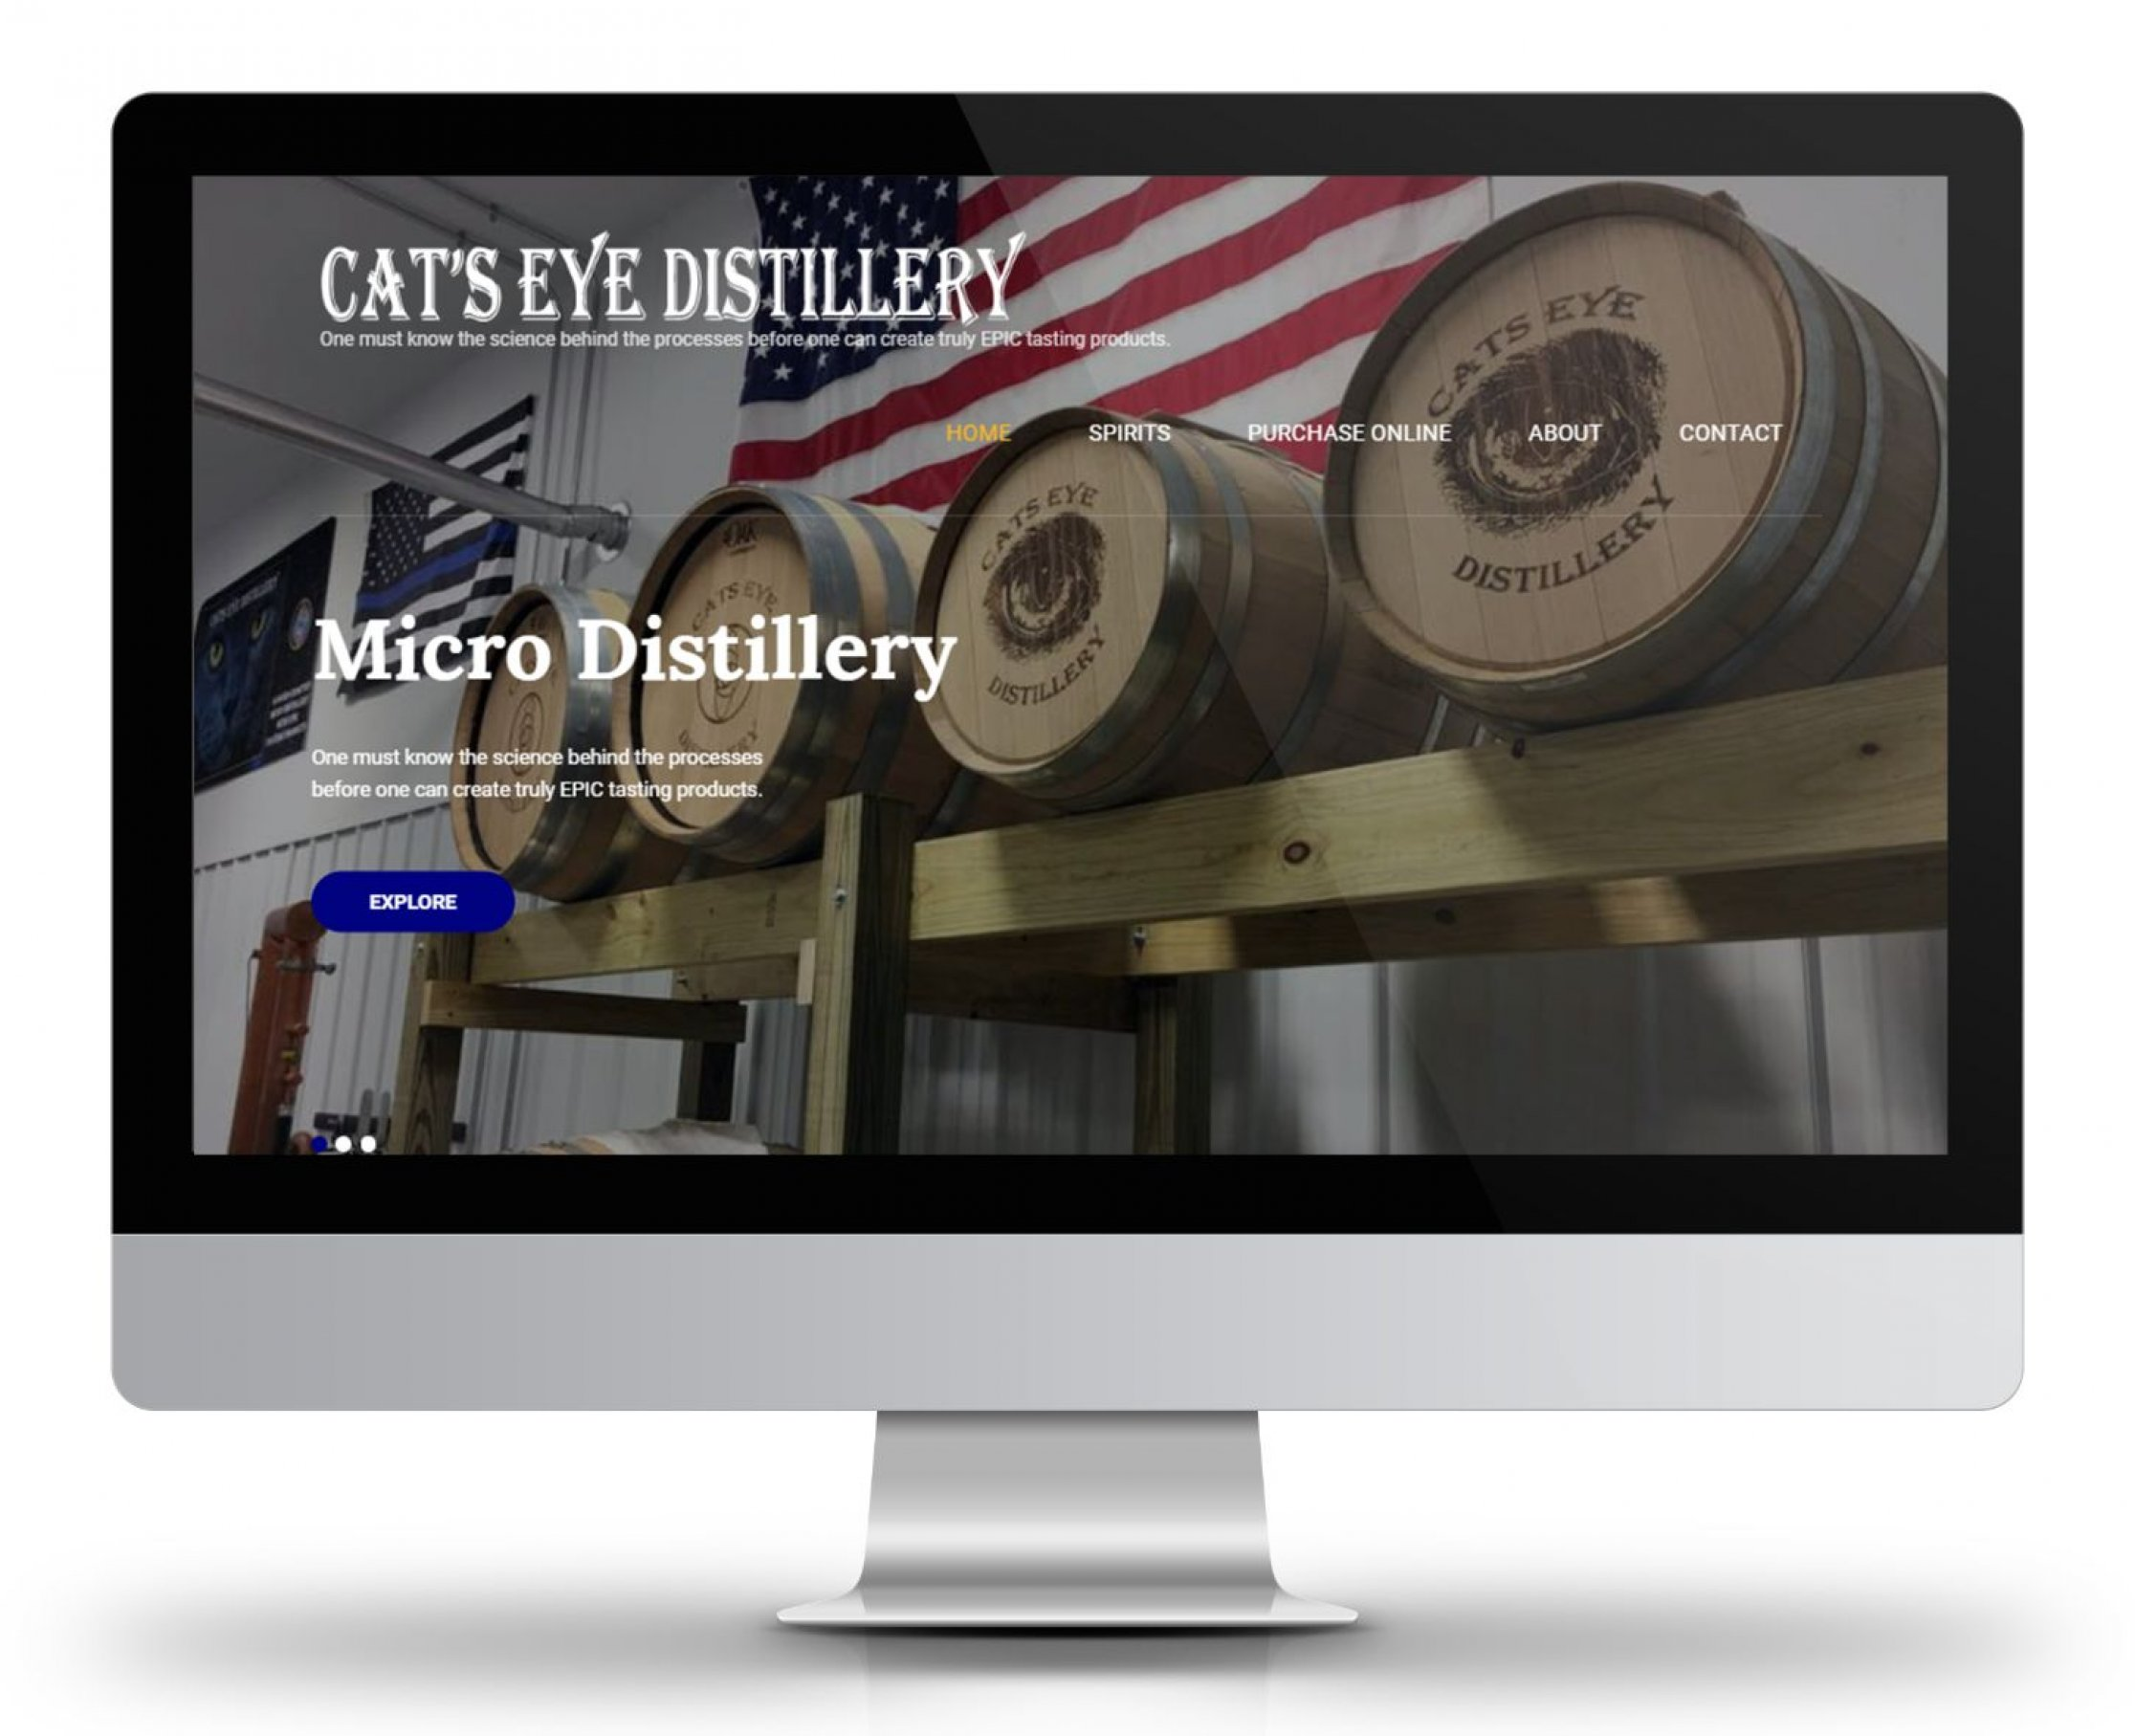 Cat's Eye Distillery